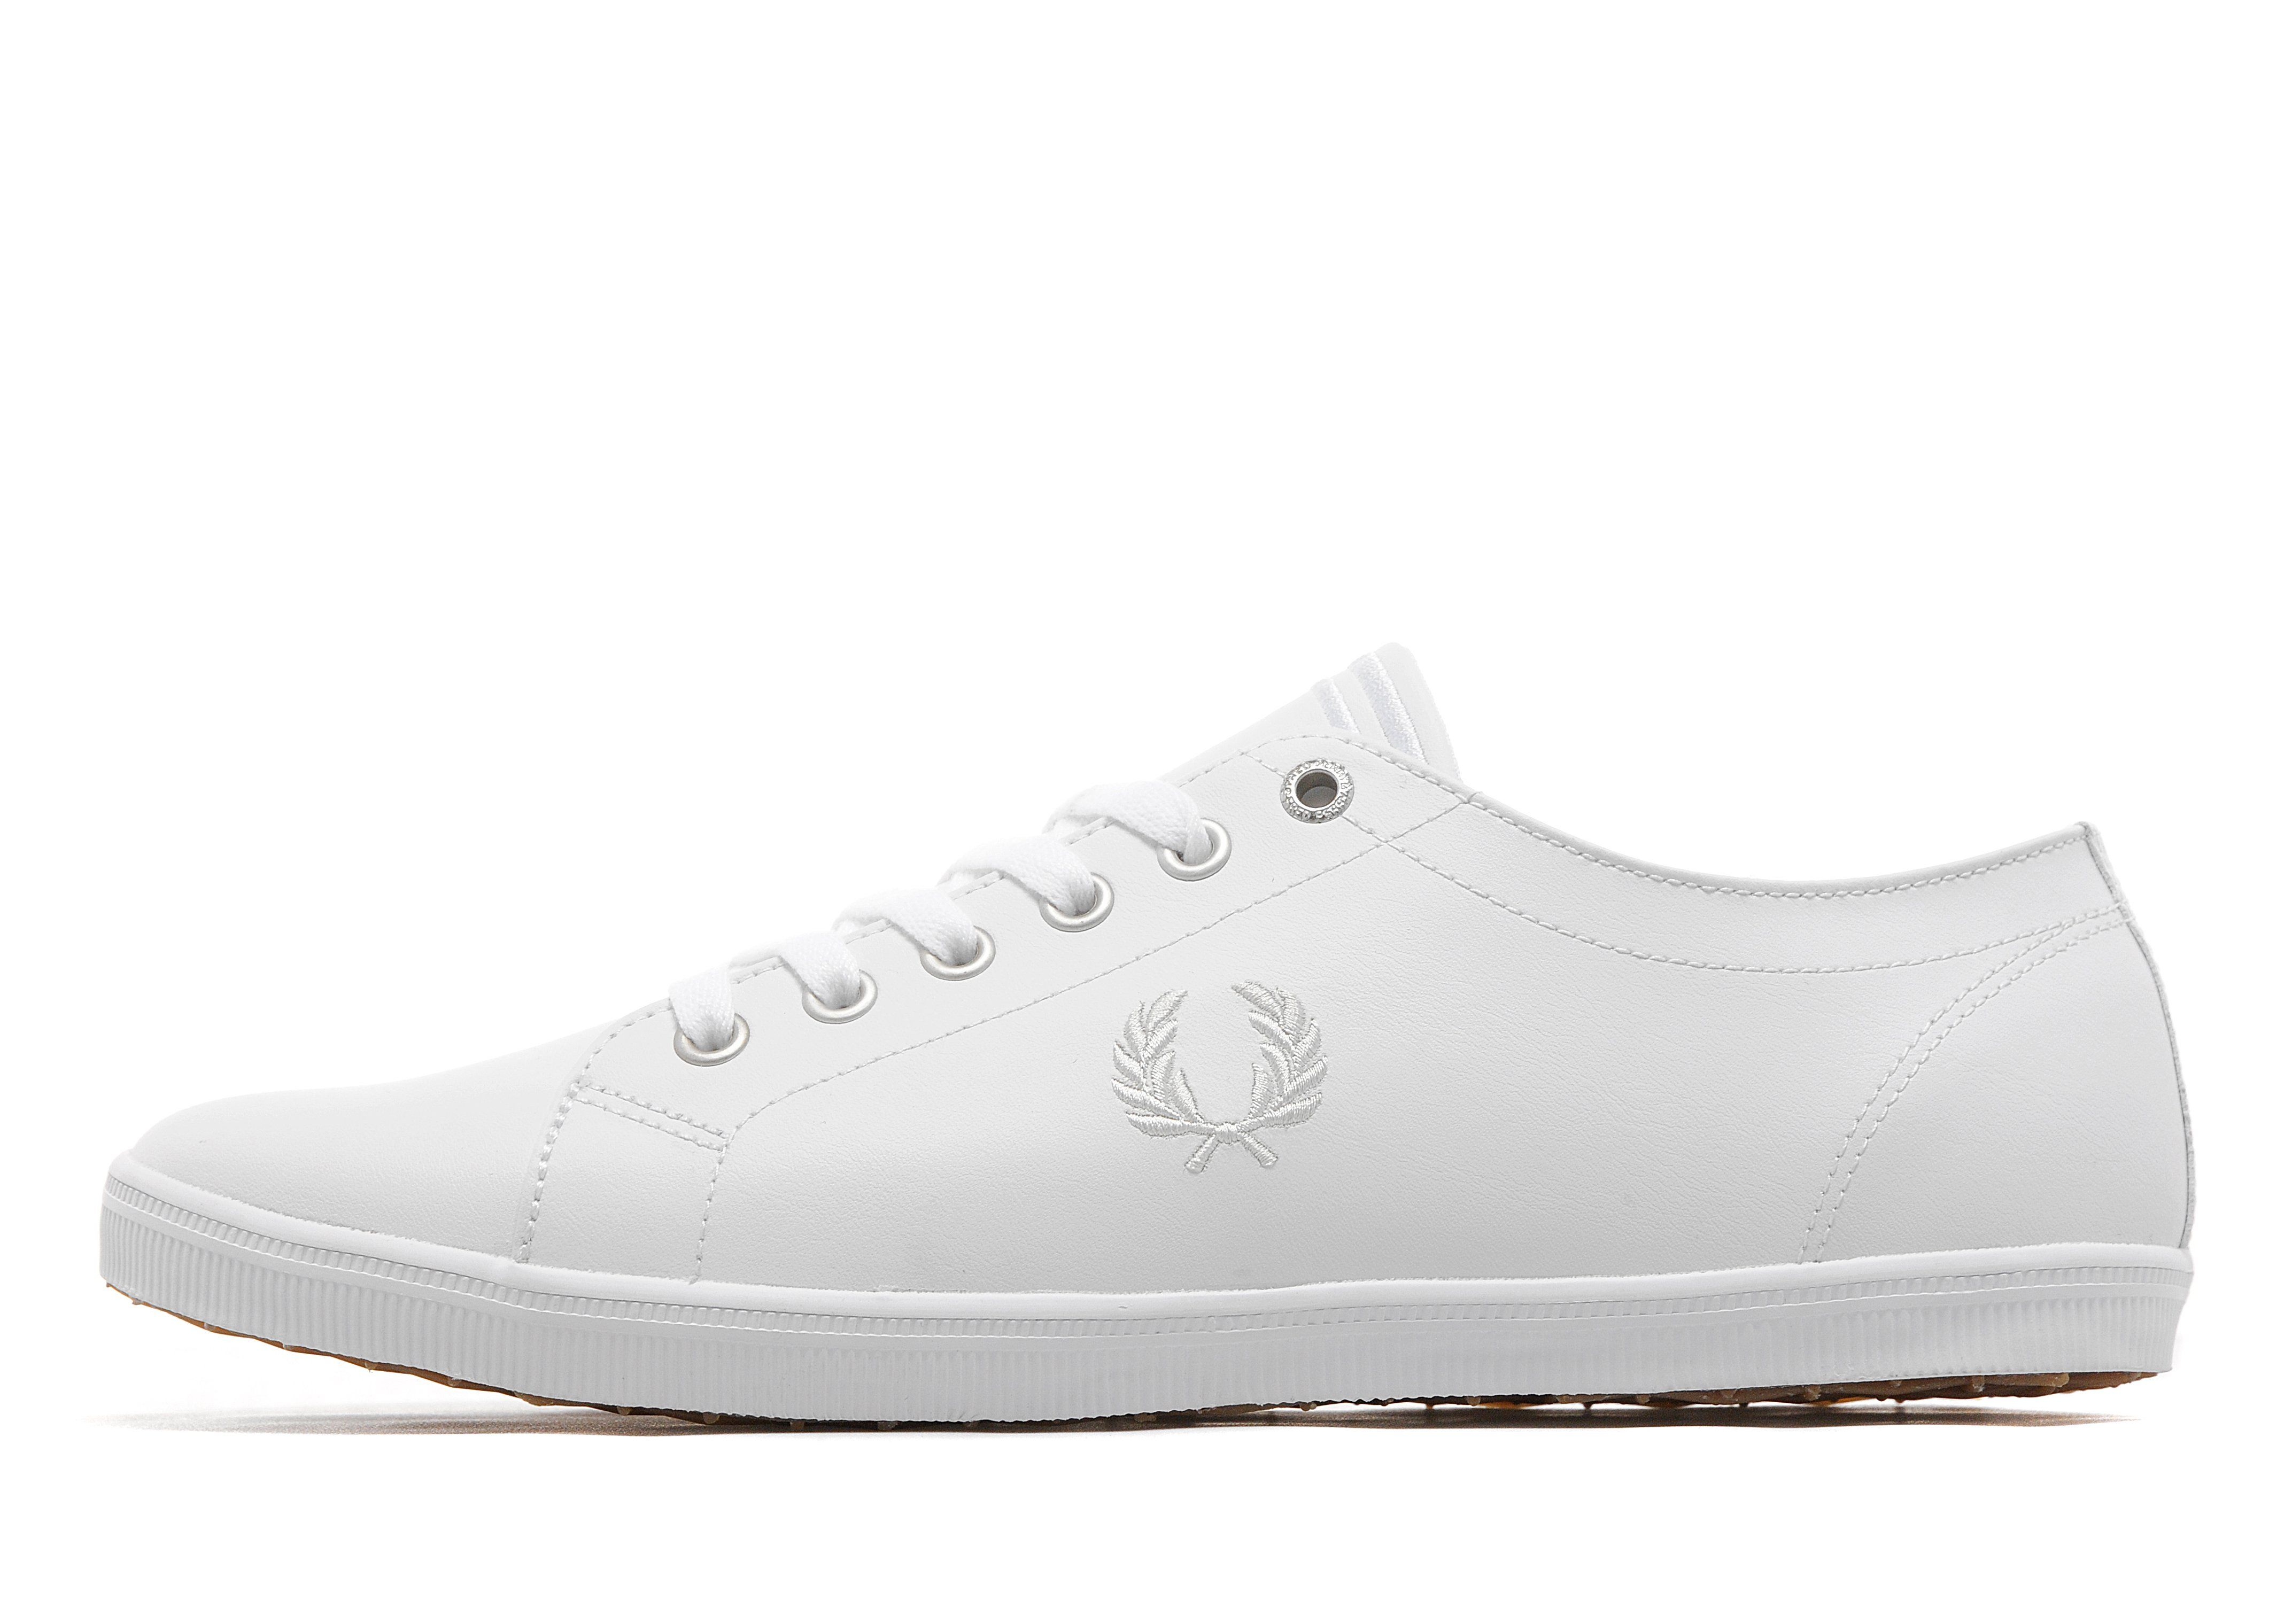 Kingston White Leather Trainers - White/white Fred Perry